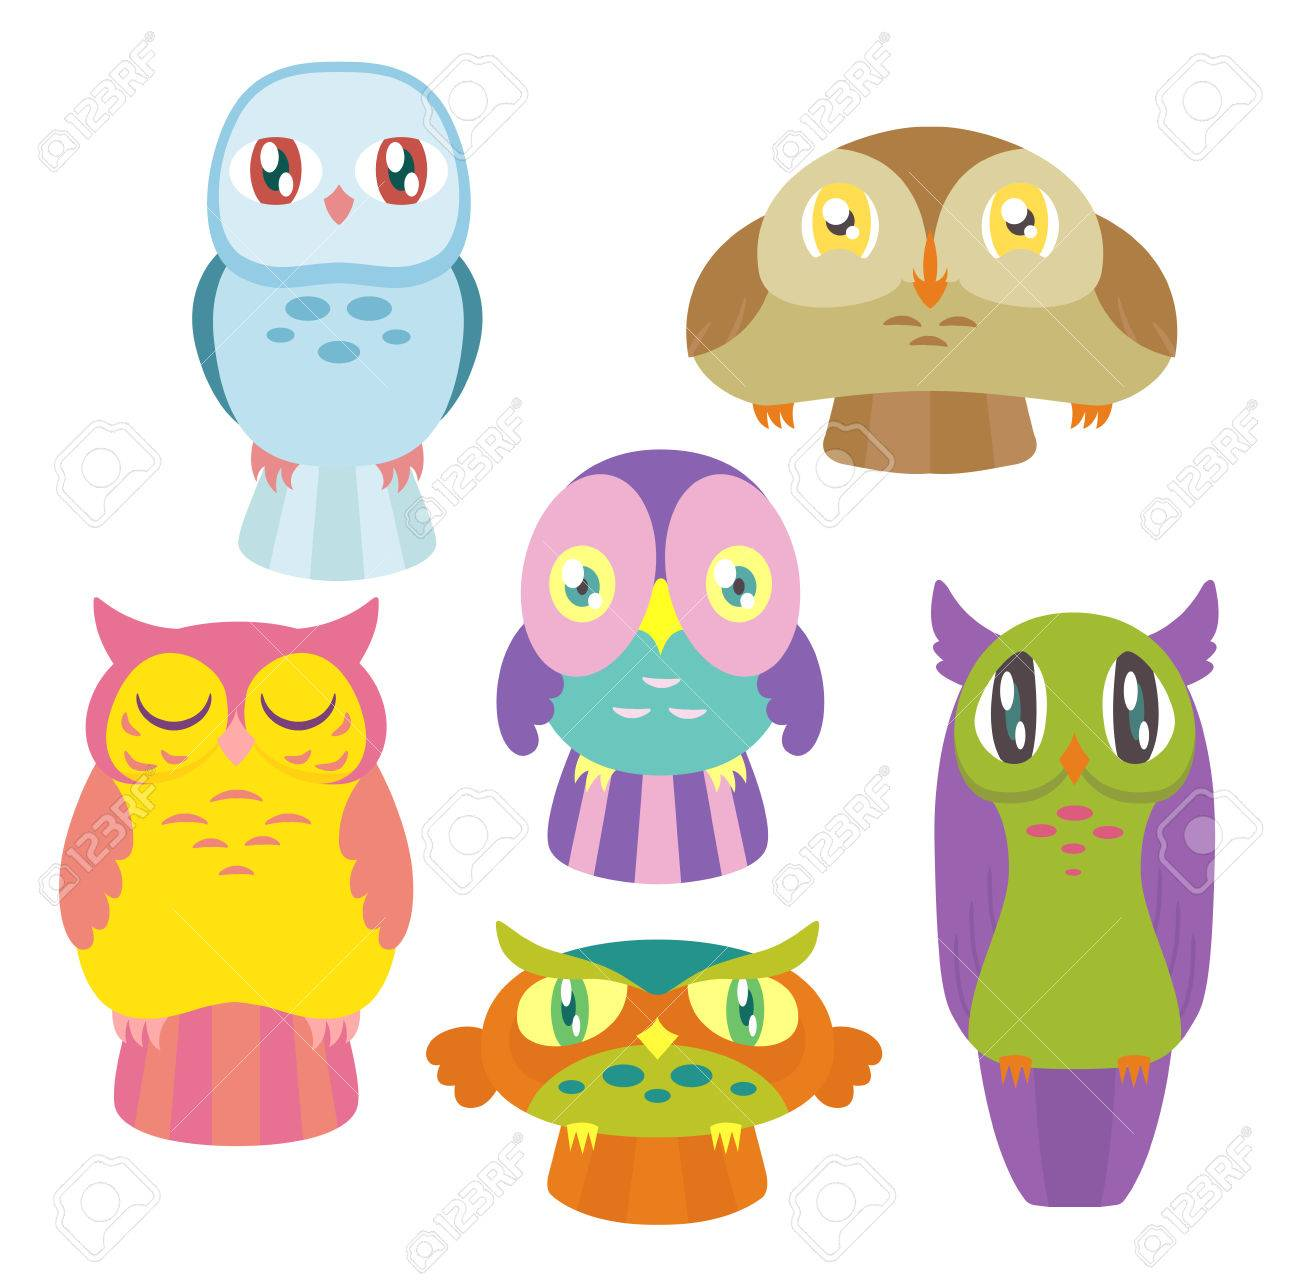 a collection of 6 cute colorful owls of different shapes and sizes stock vector